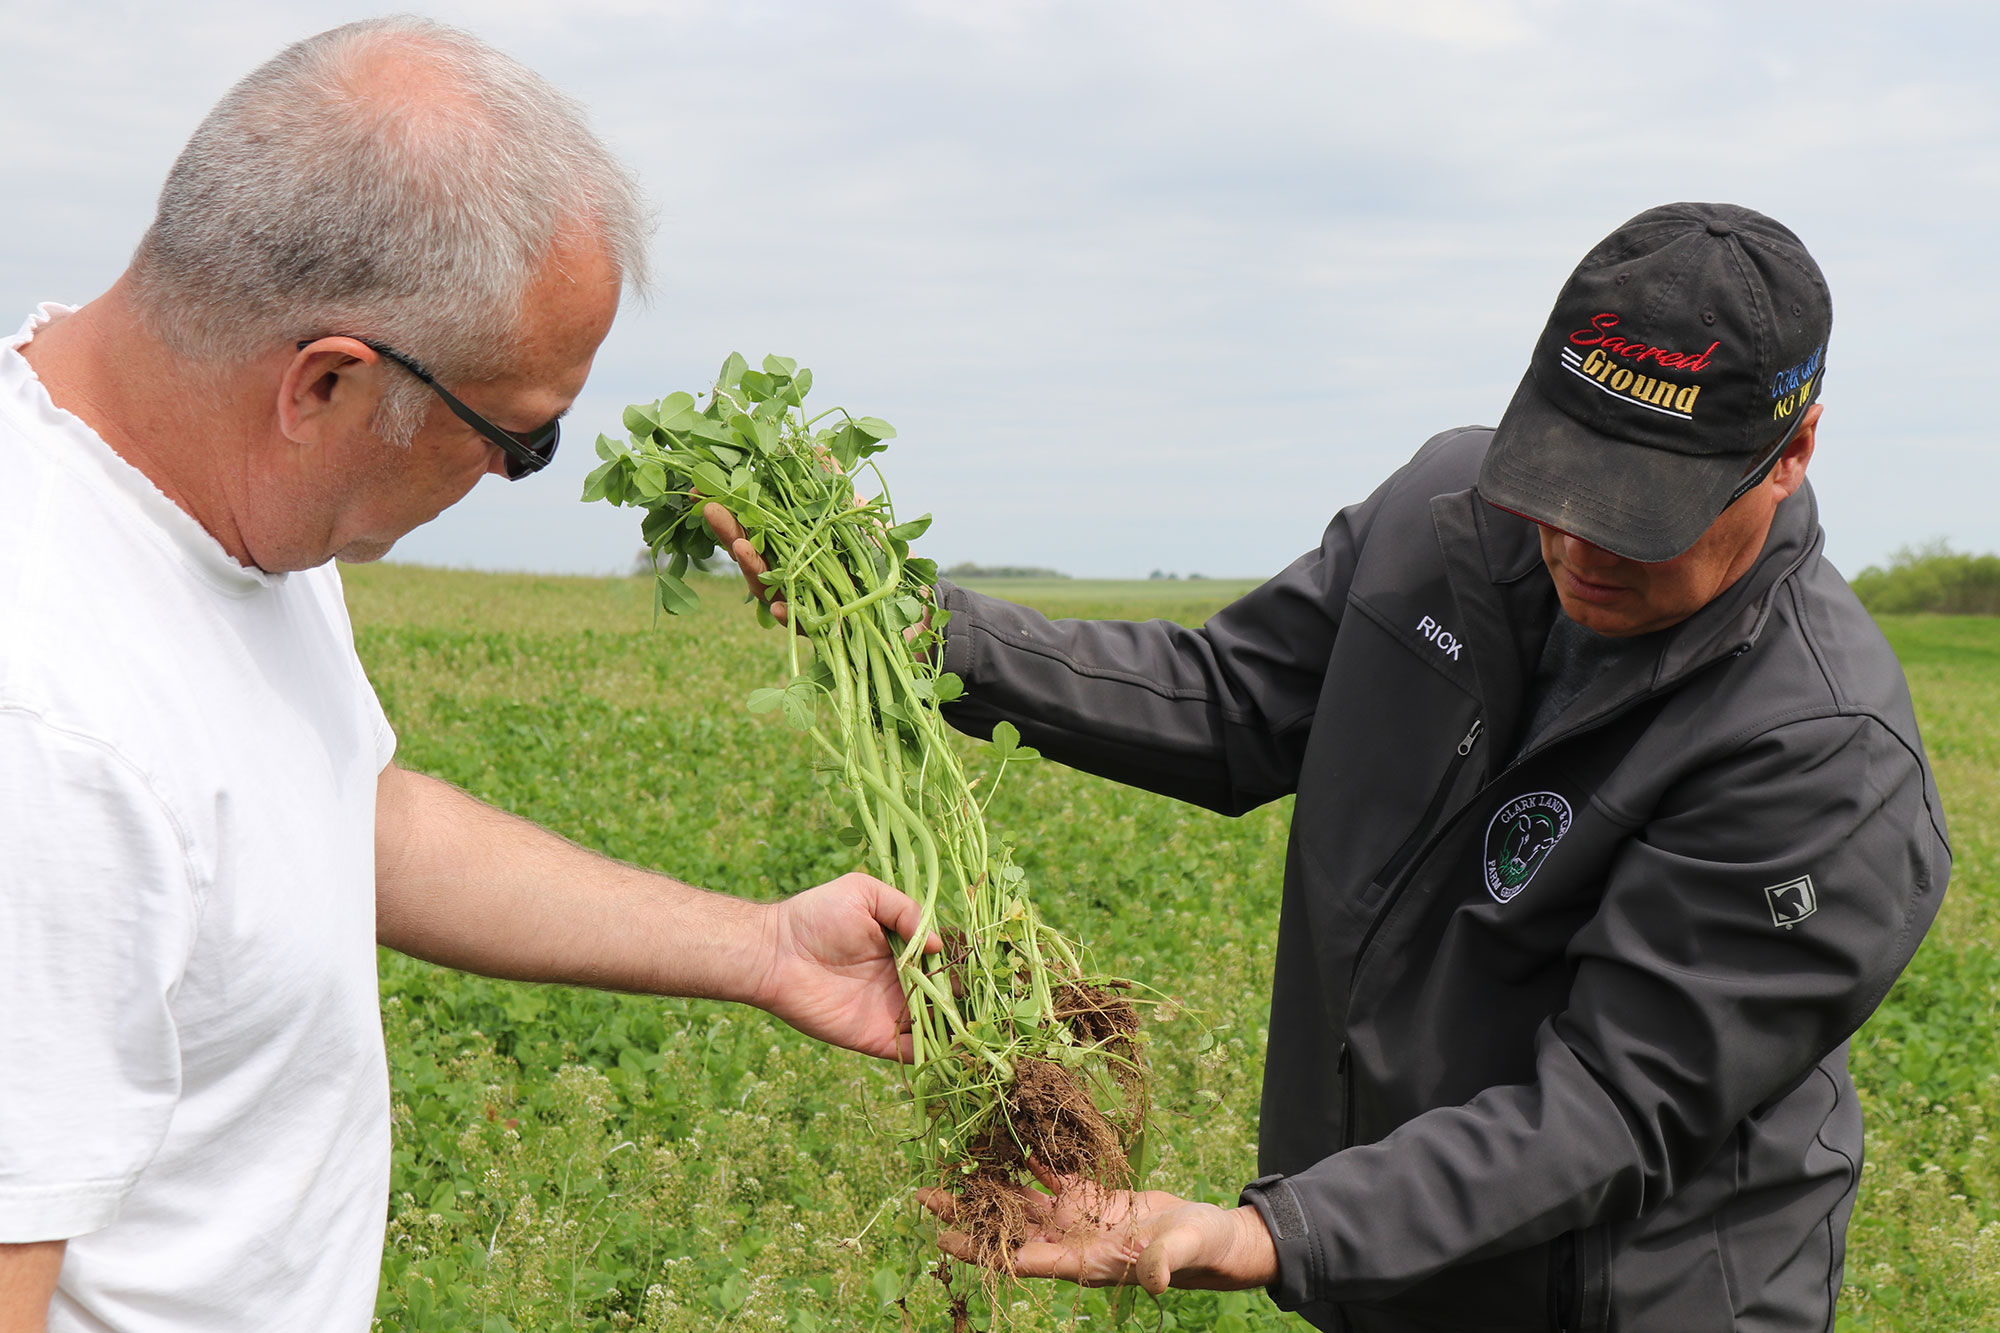 cover crop growers